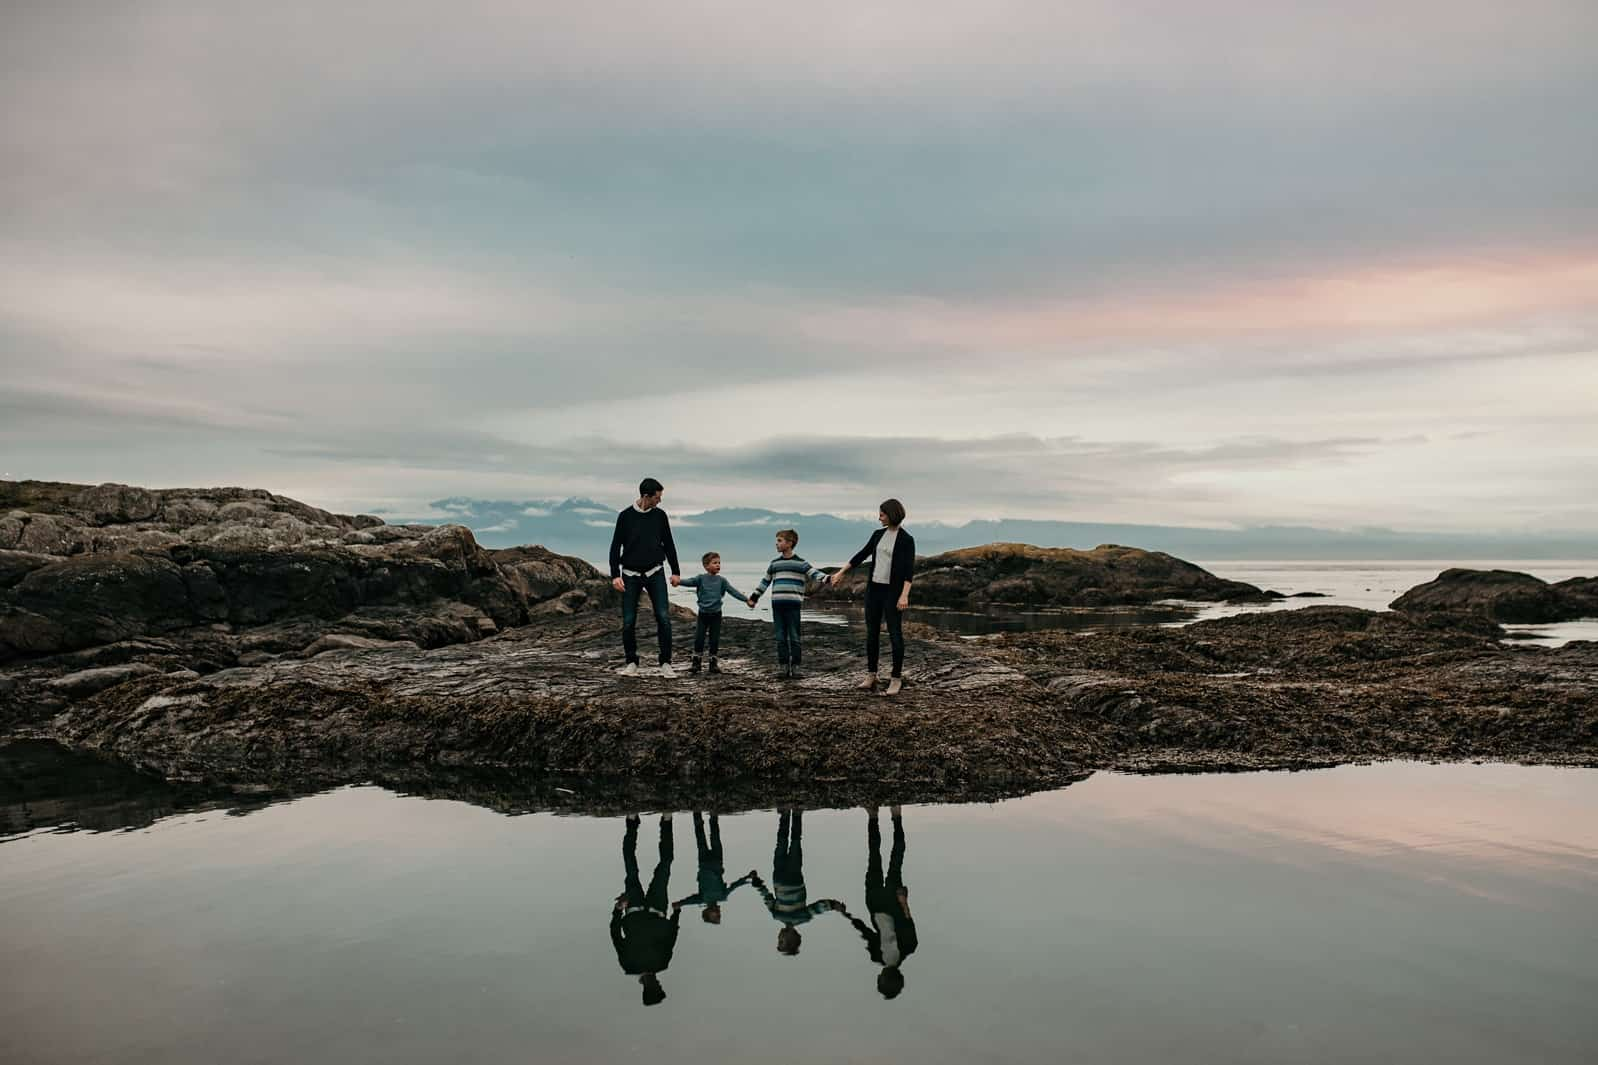 A family holds hands, reflection captured in the water, in front of Dallas Beach in Victoria, BC.